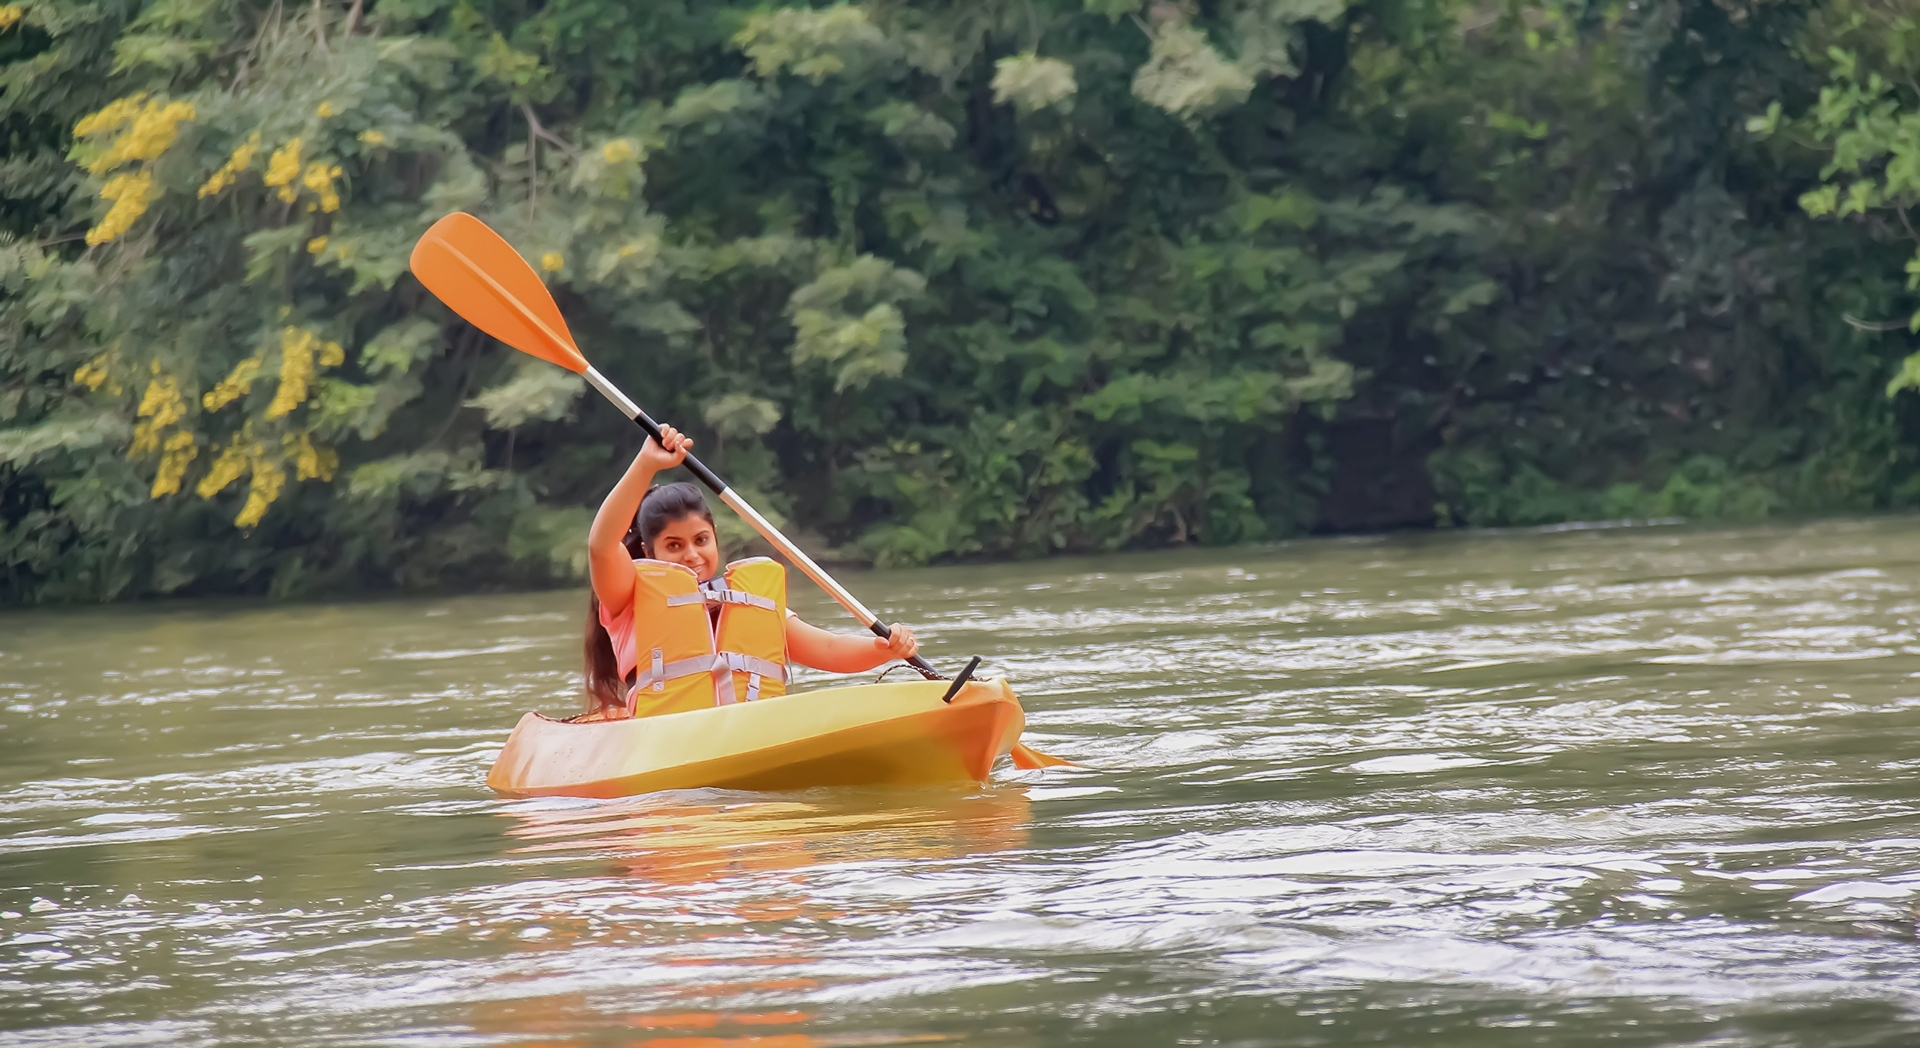 Prerna Das kayaking